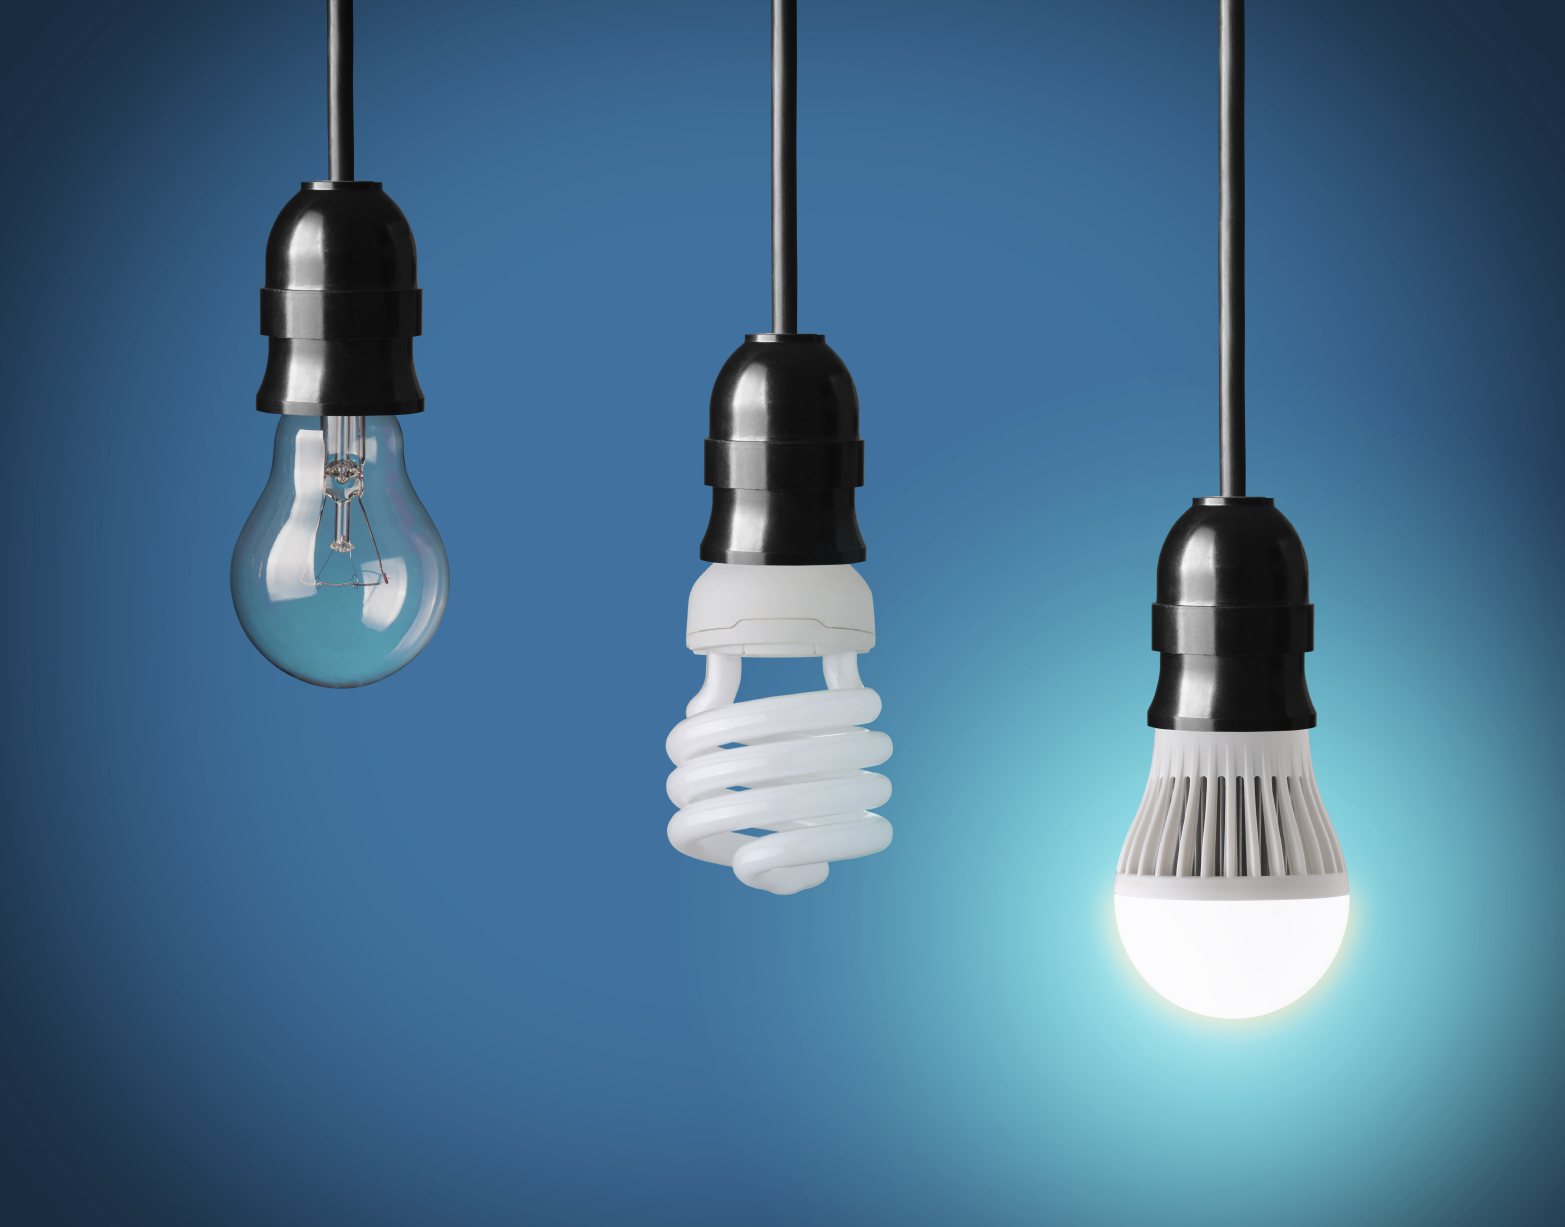 How To Recycle Compact Fluorescent Light Bulbs Great Pictures